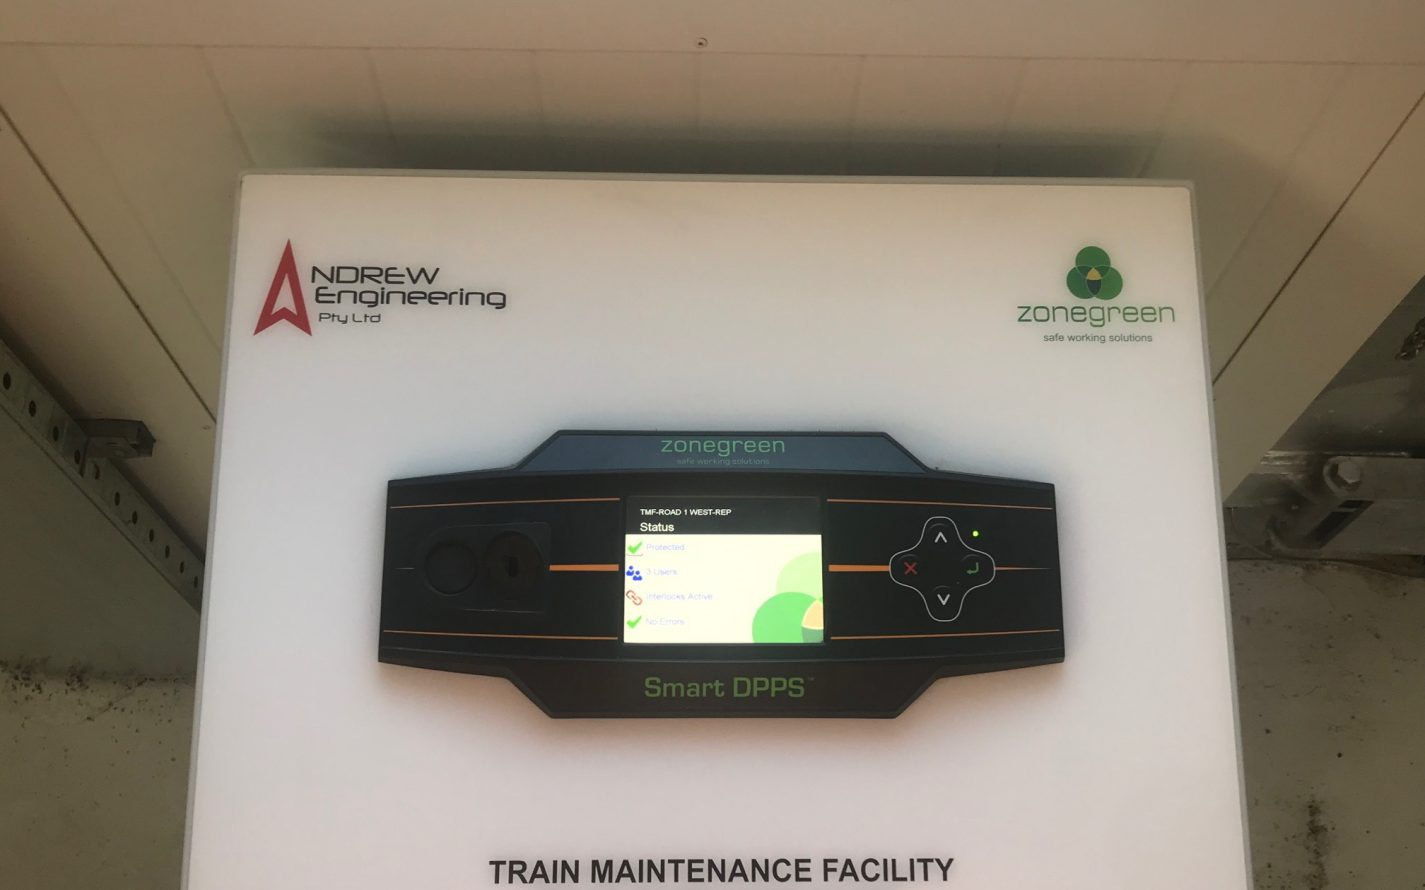 ZONEGREEN CELEBRATES SECOND AUSTRALIAN INSTALL